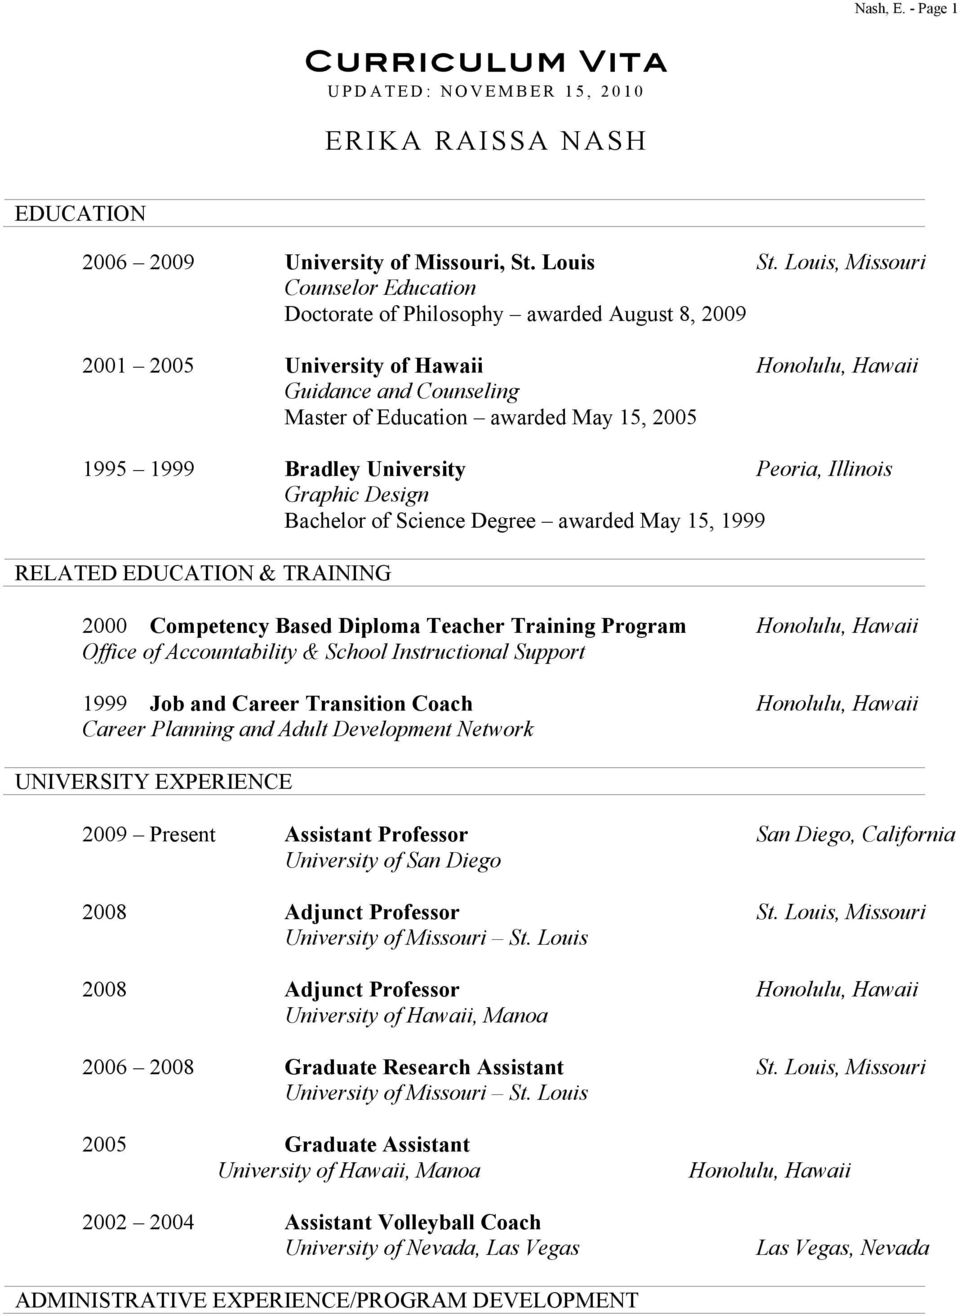 1995 1999 Bradley University Peoria, Illinois Graphic Design Bachelor of Science Degree awarded May 15, 1999 RELATED EDUCATION & TRAINING 2000 Competency Based Diploma Teacher Training Program